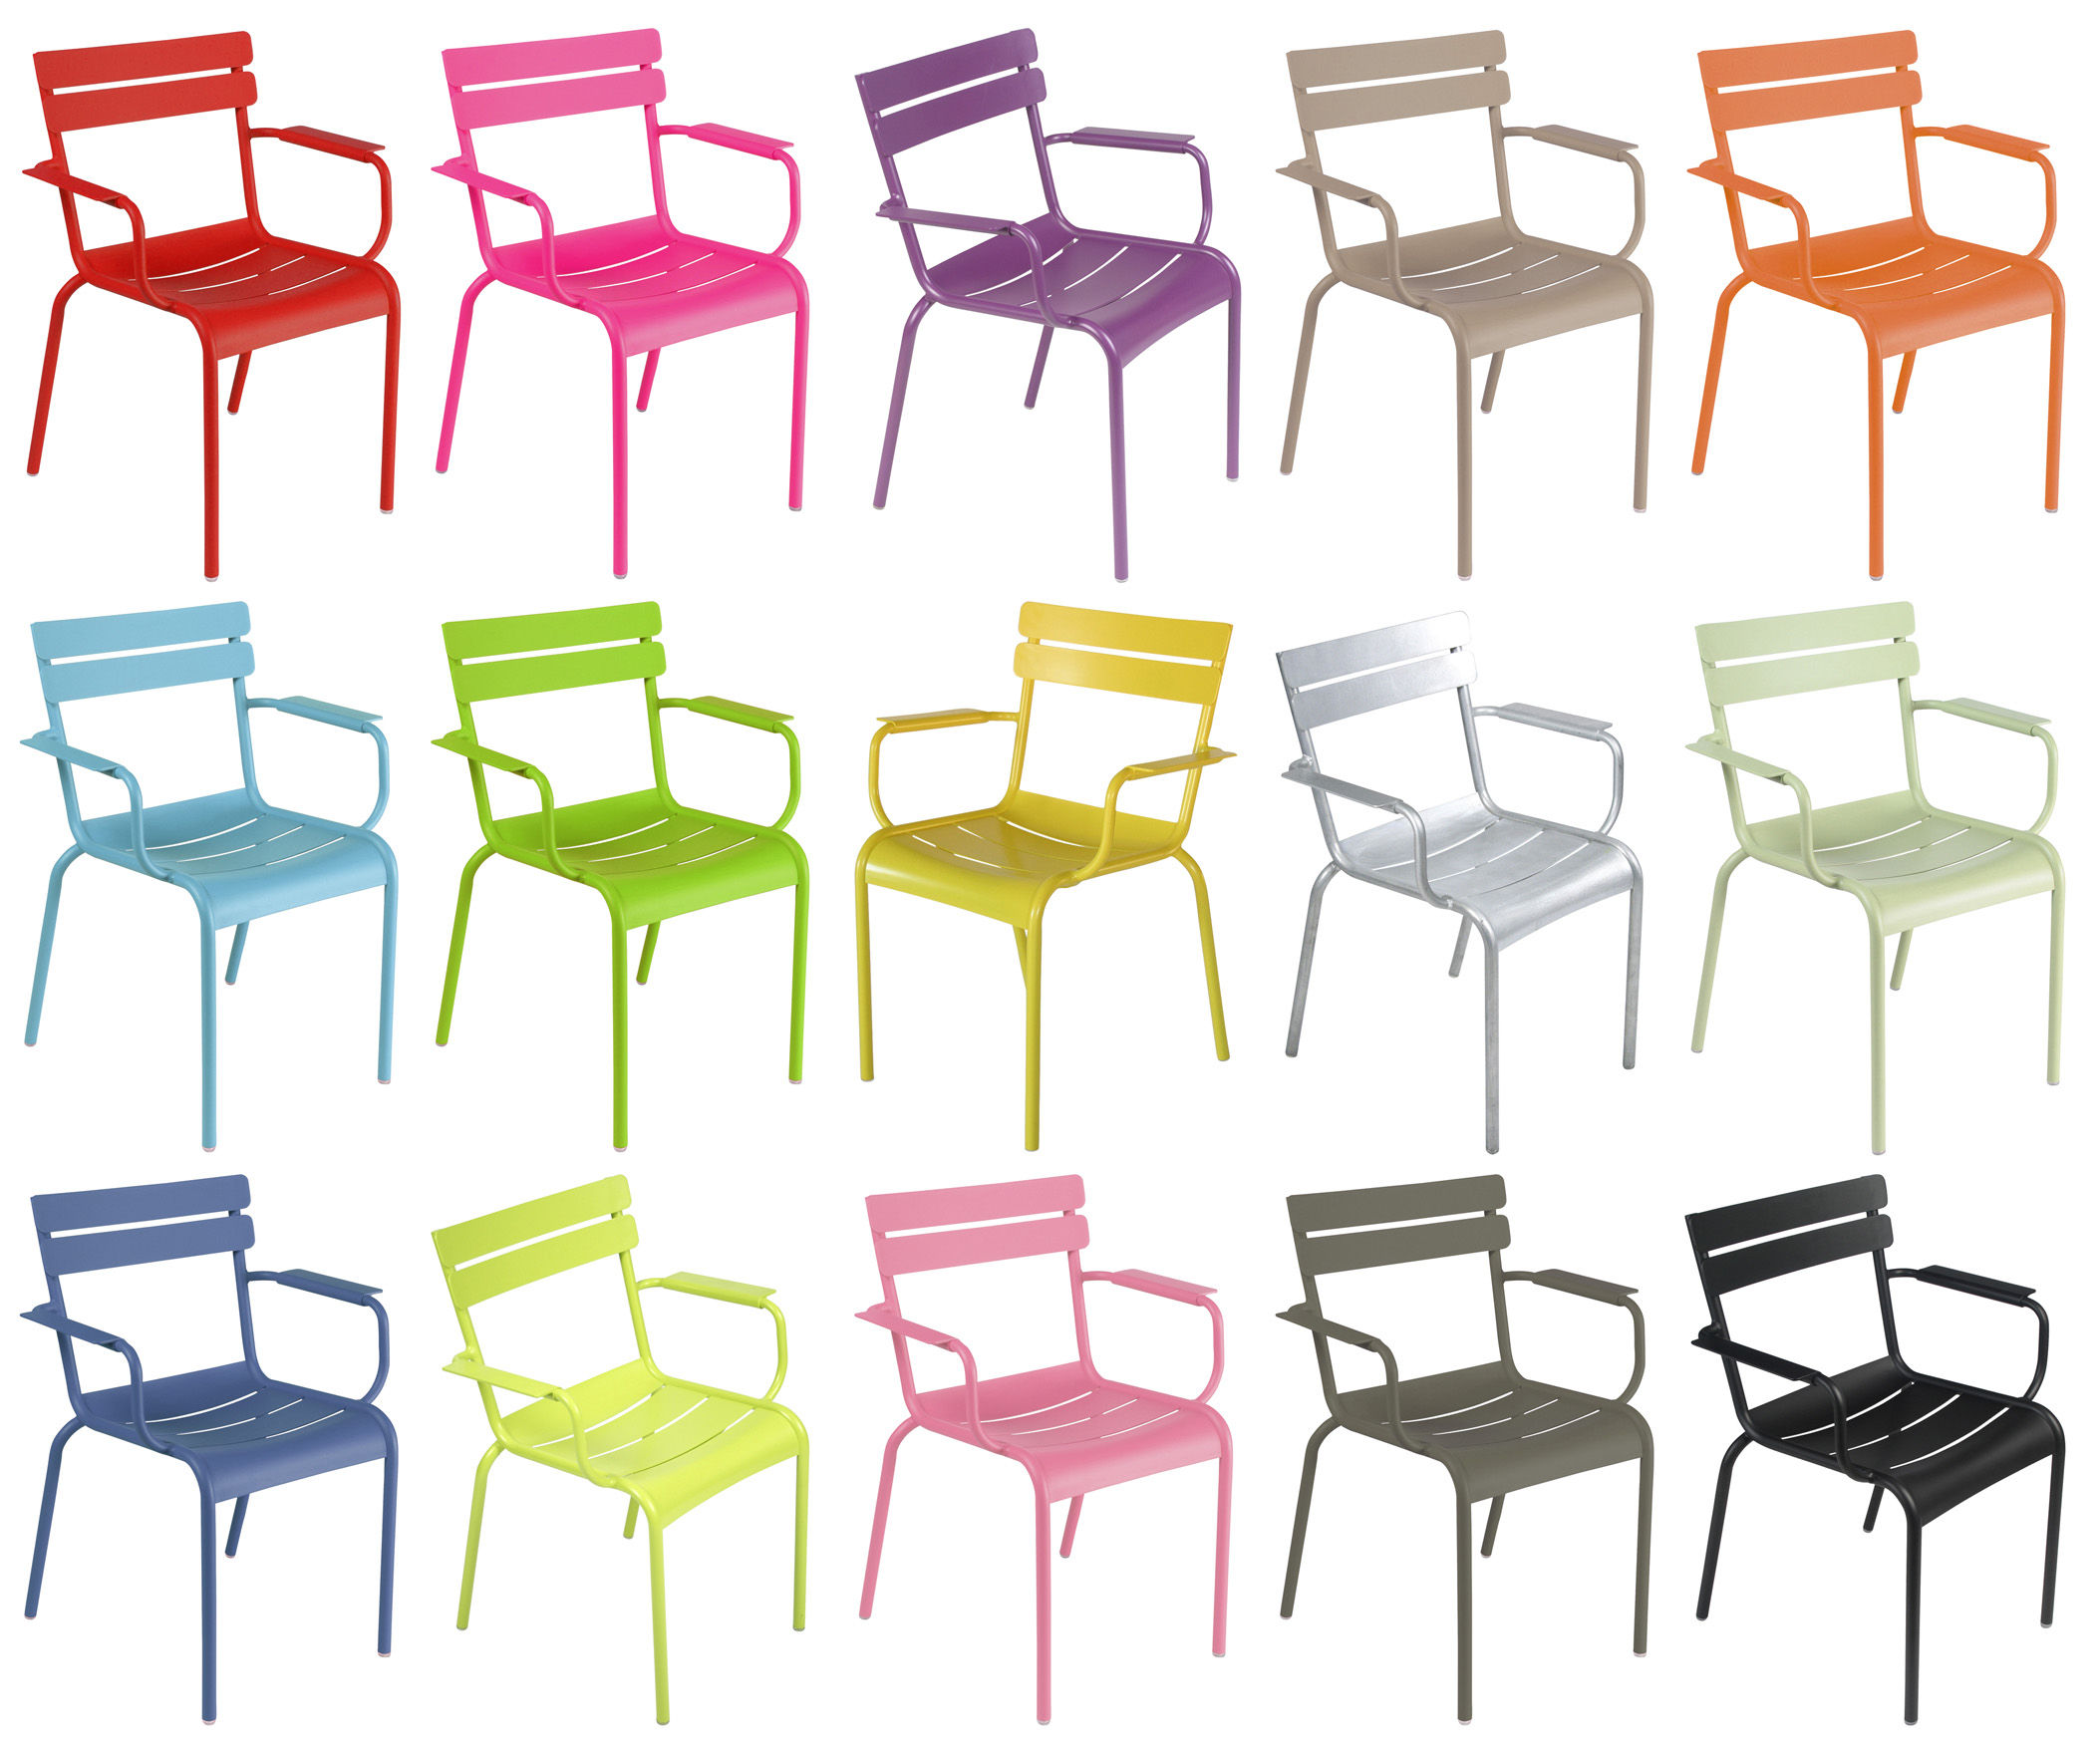 Fauteuil Empilable Luxembourg Fermob